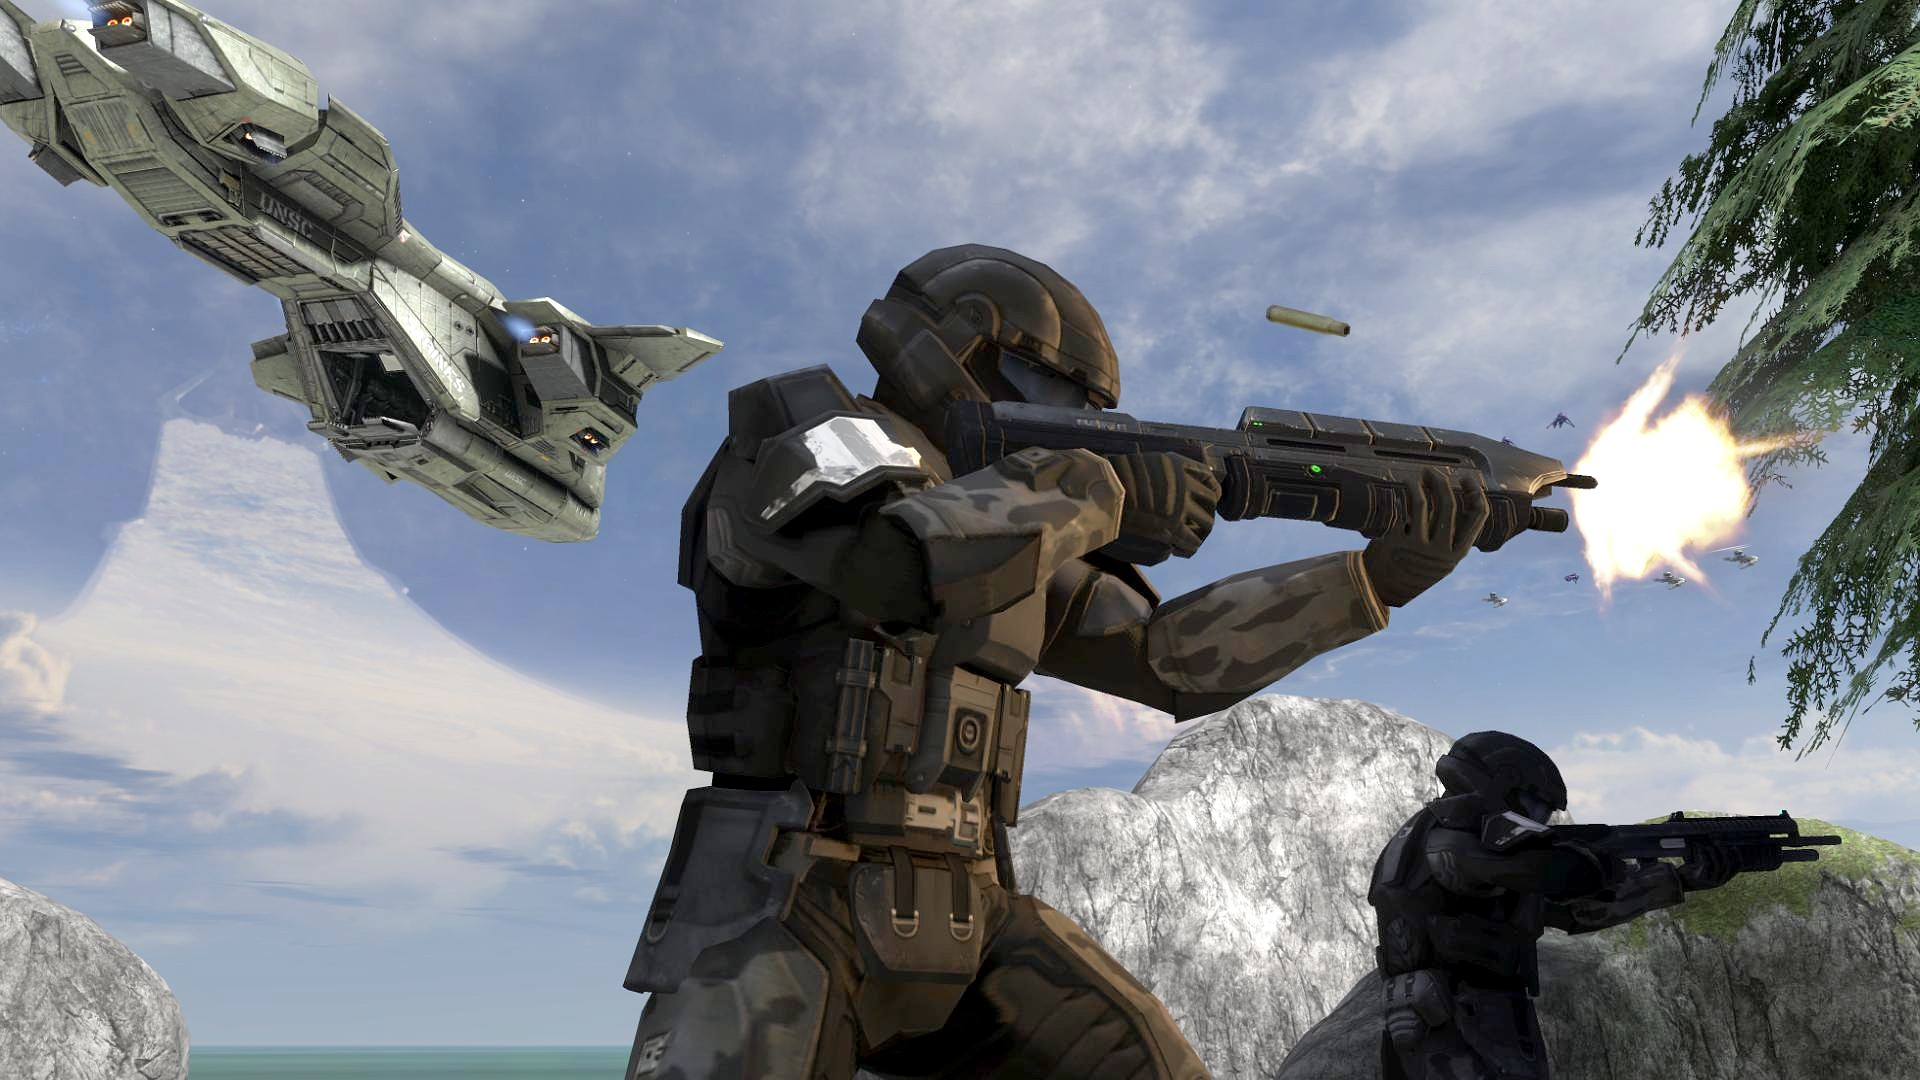 1523550184 b01d61ce19 o Halo 3: Commando and Carry All